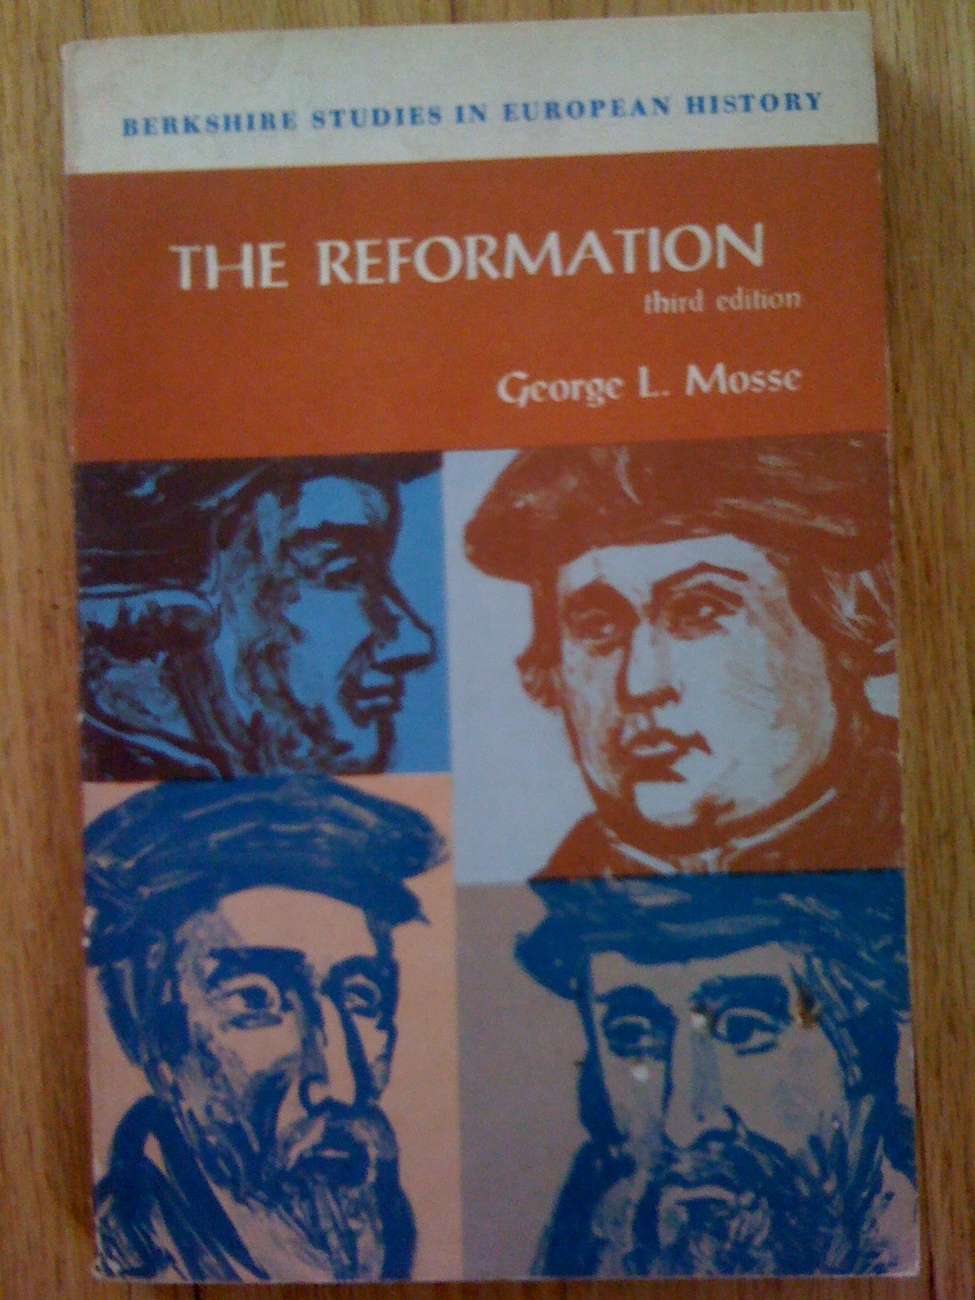 THE REFORMATION by GEORGE L. MOSSE 3rd Edition Berkshire Studies In European His